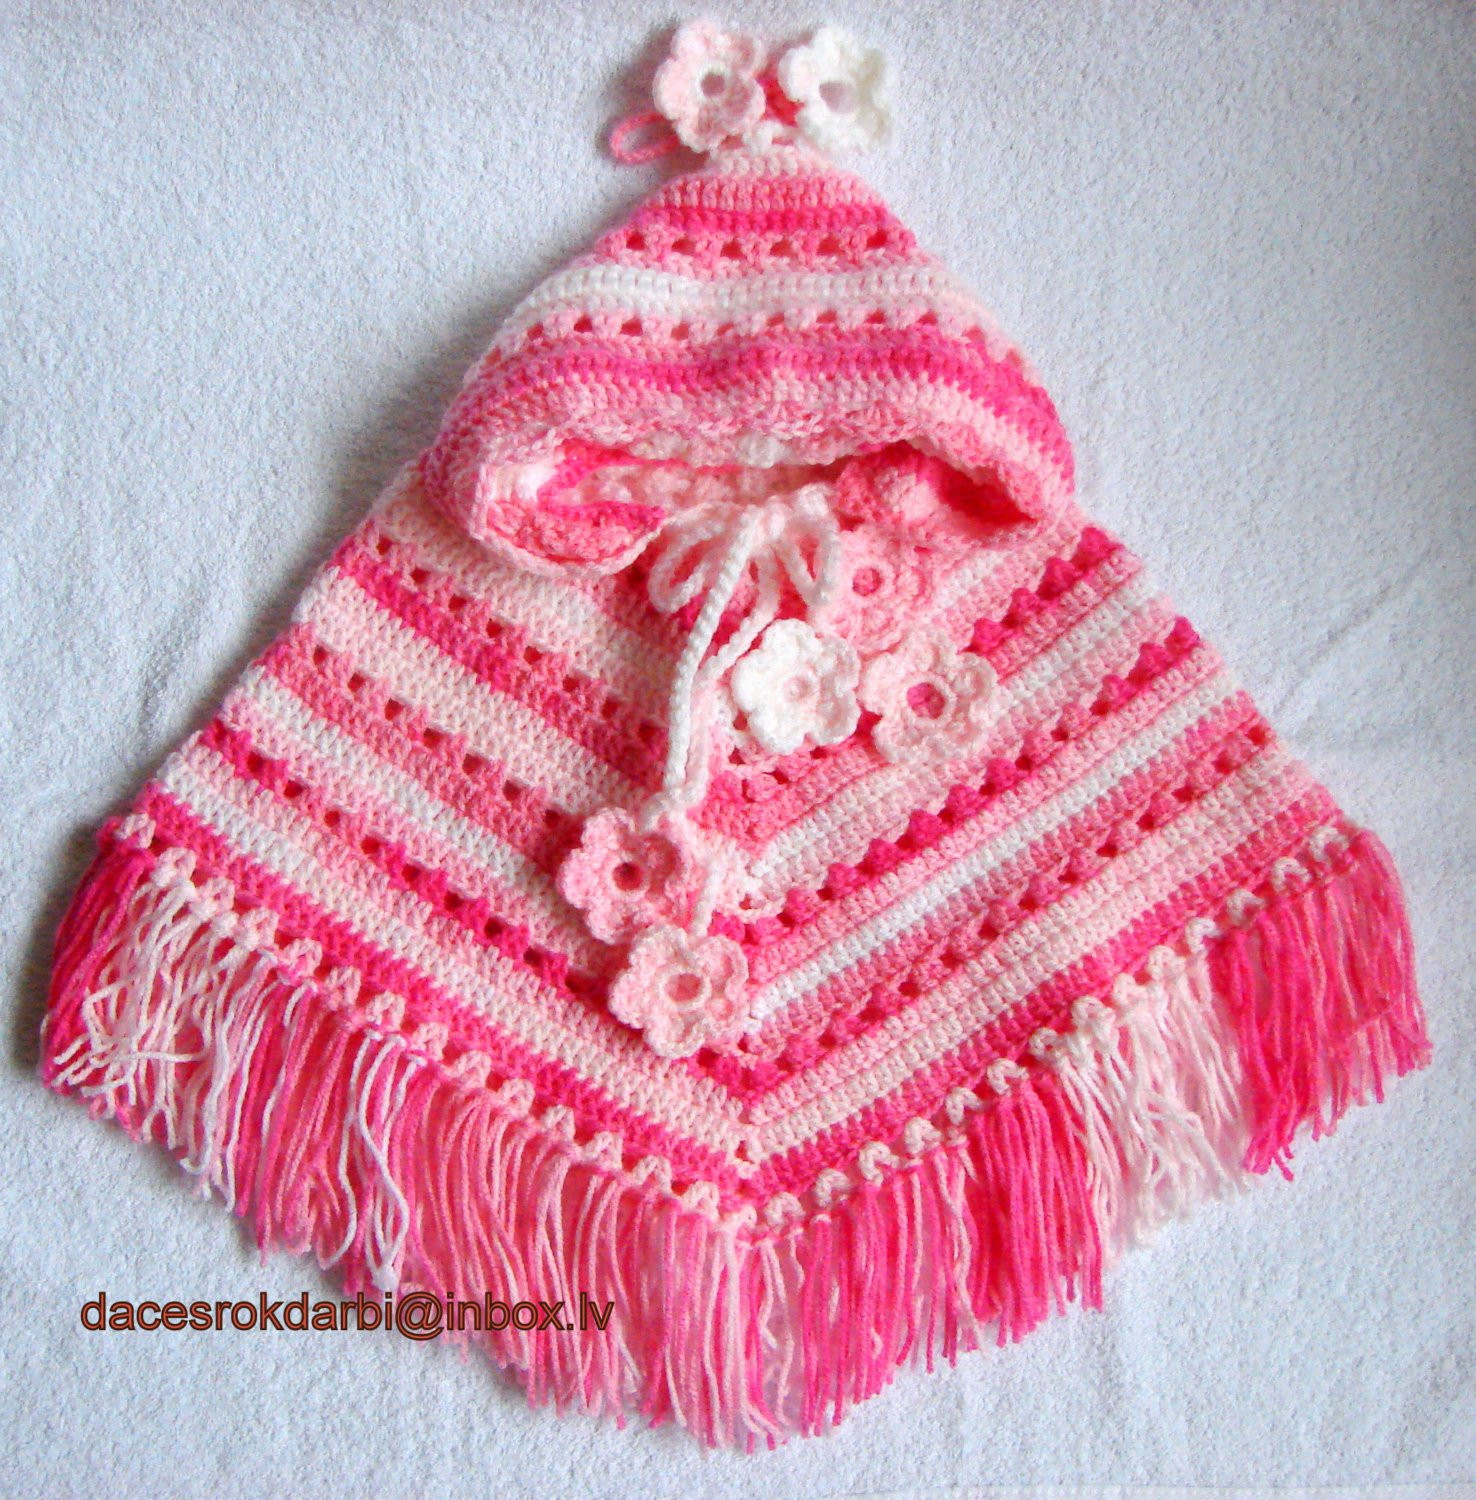 Baby Girl Crocheted Hooded Poncho by Dachuks on Etsy